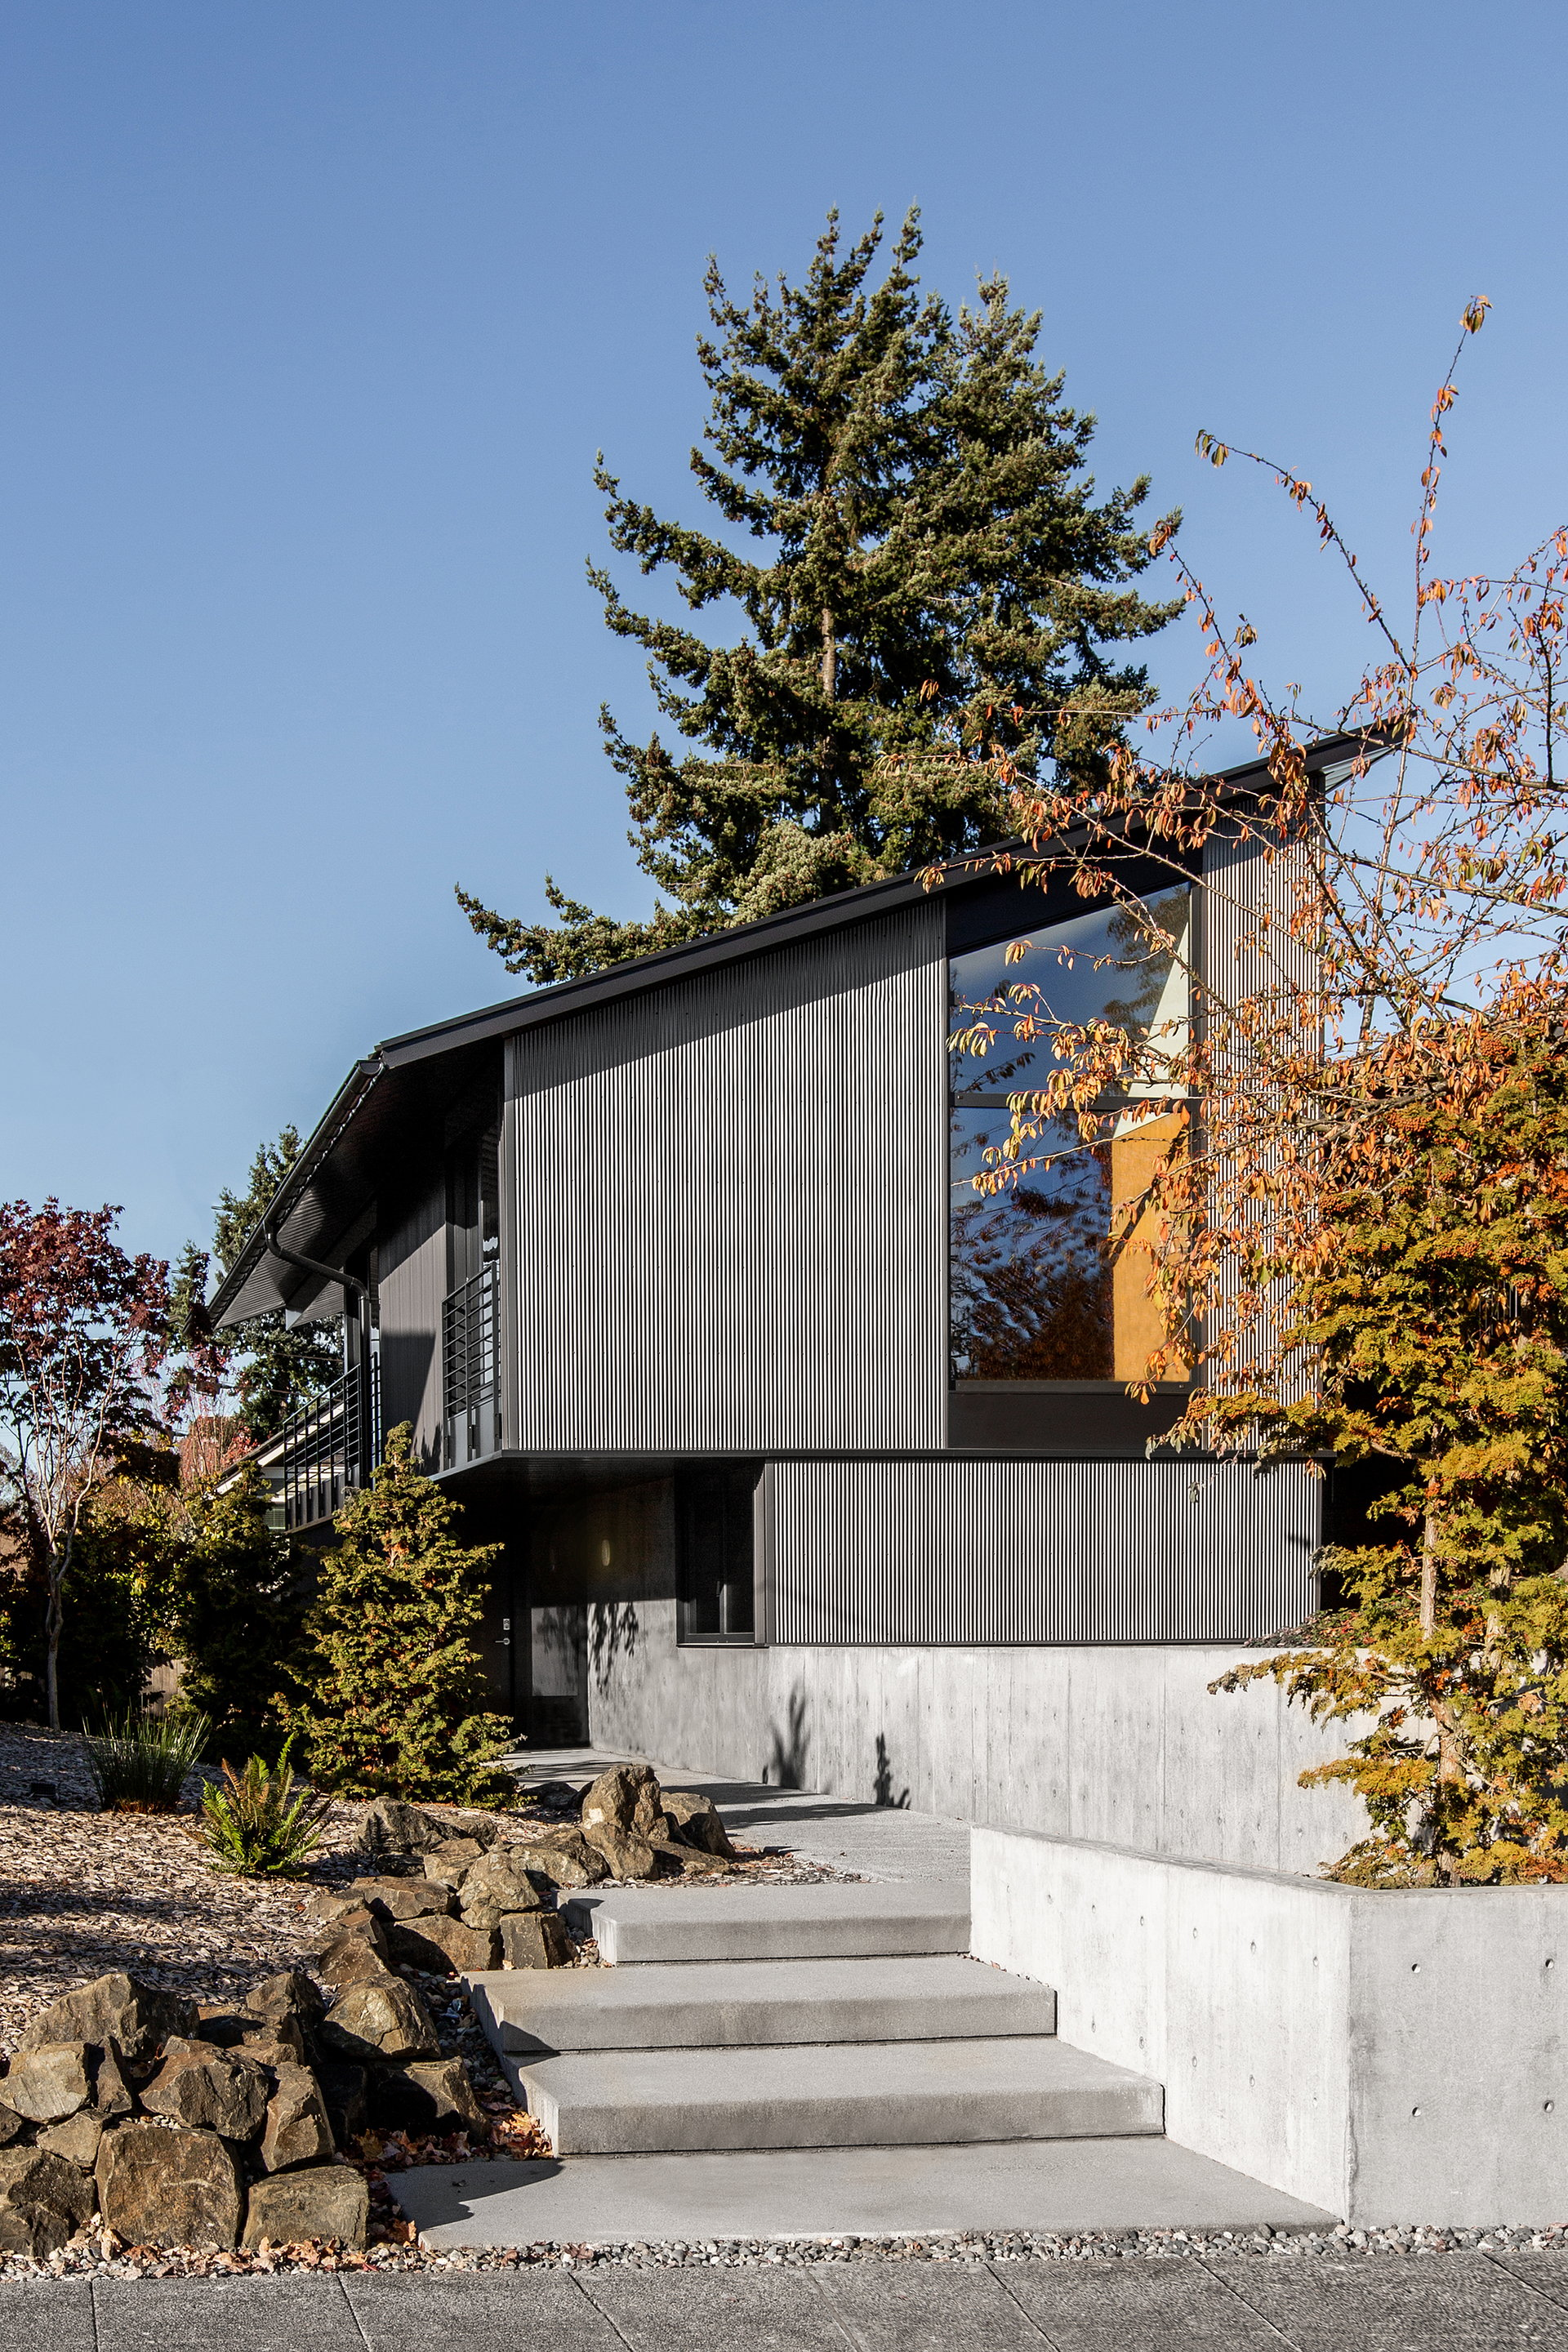 West Seattle House by SHED Architecture